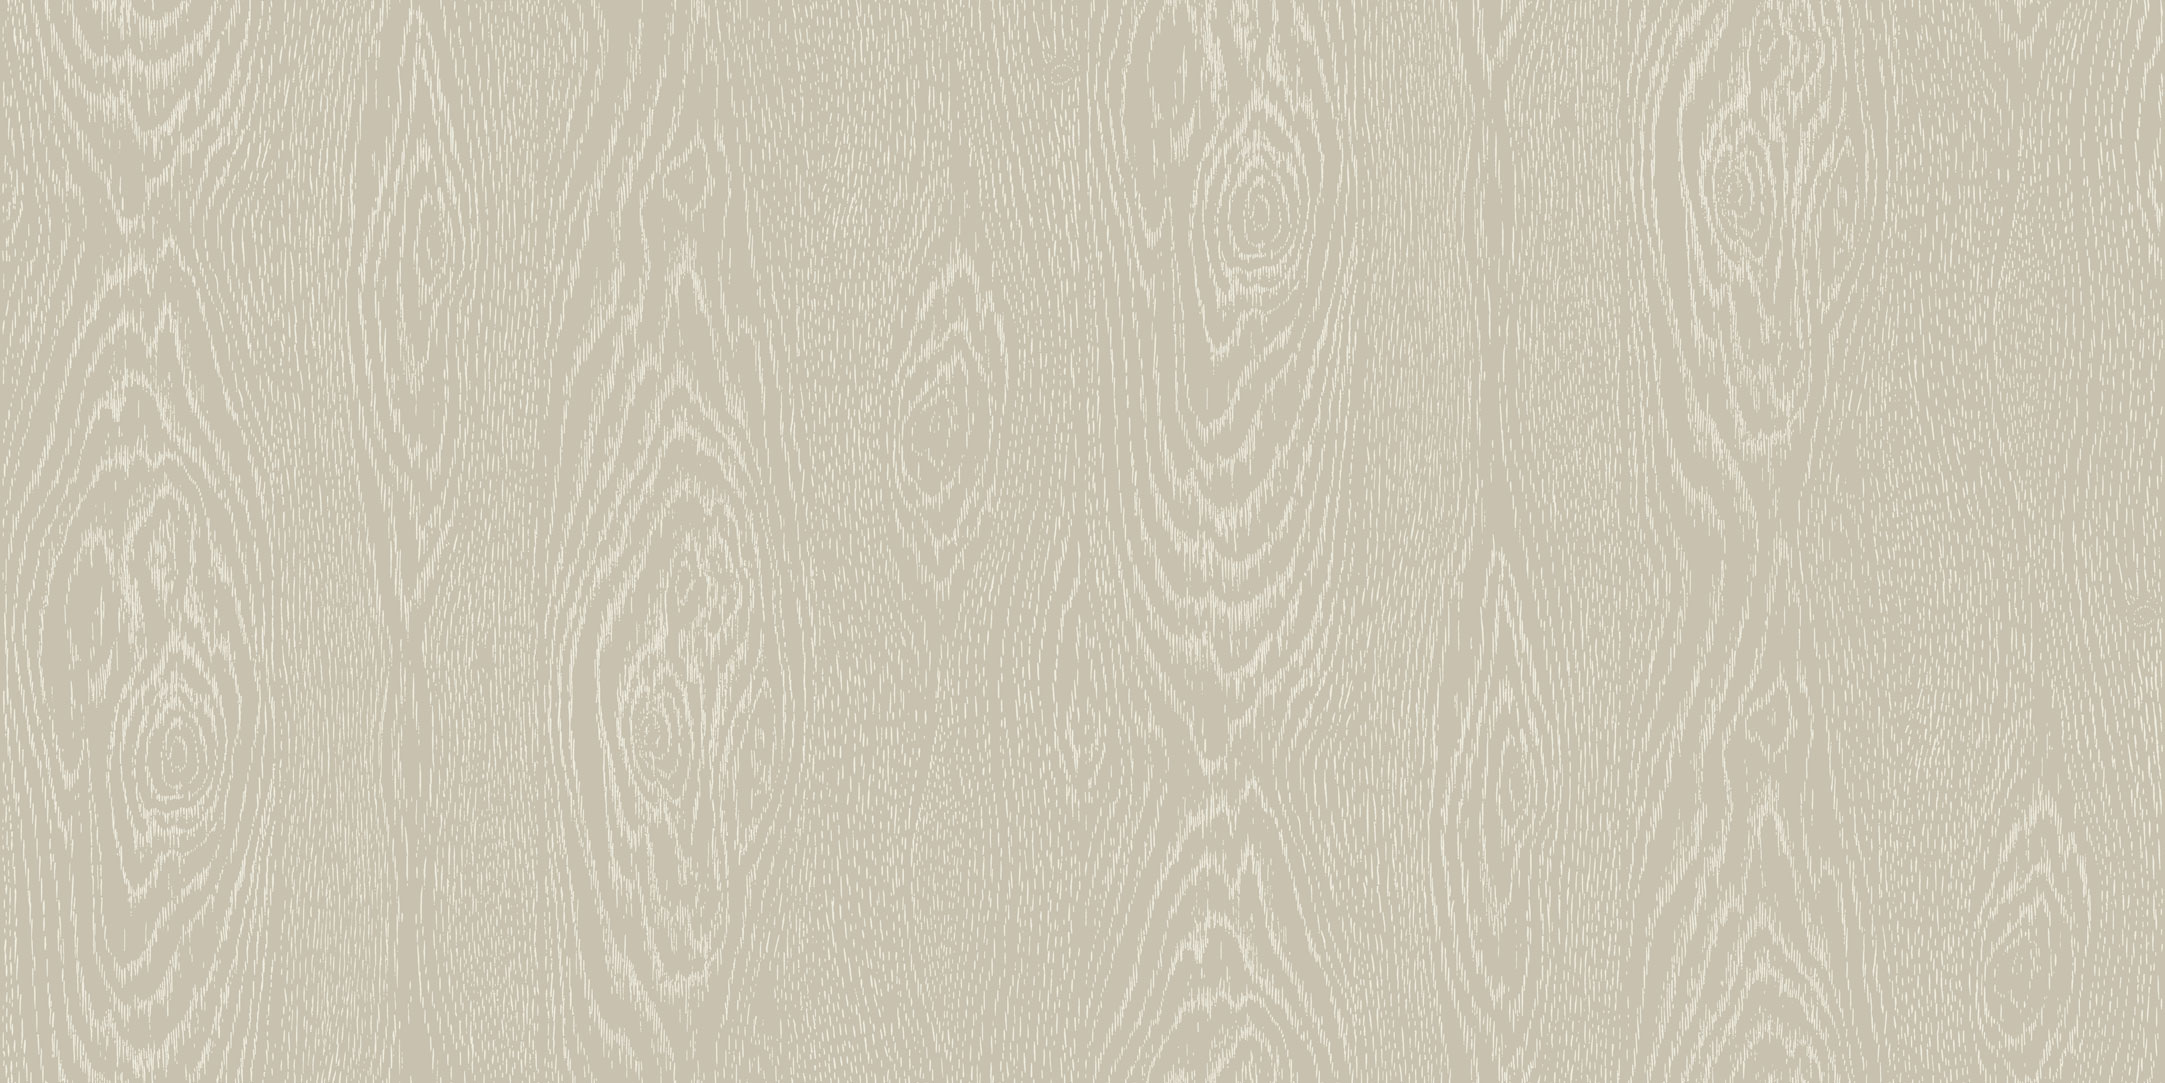 cole son wood grain wallpaper - Grain Wallpaper